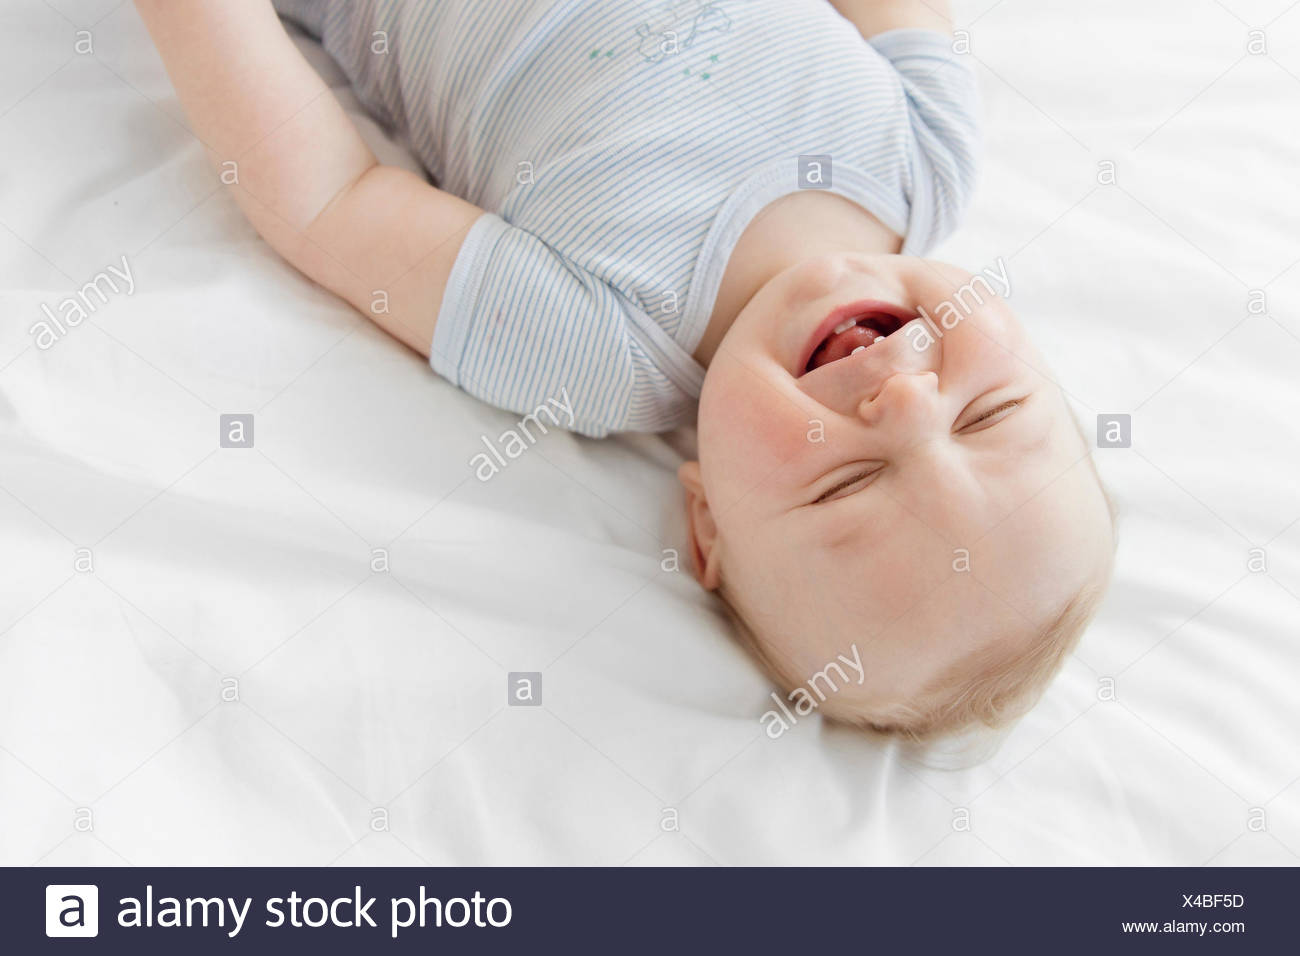 High angle view of baby boy with blond hair lying on a bed. - Stock Image